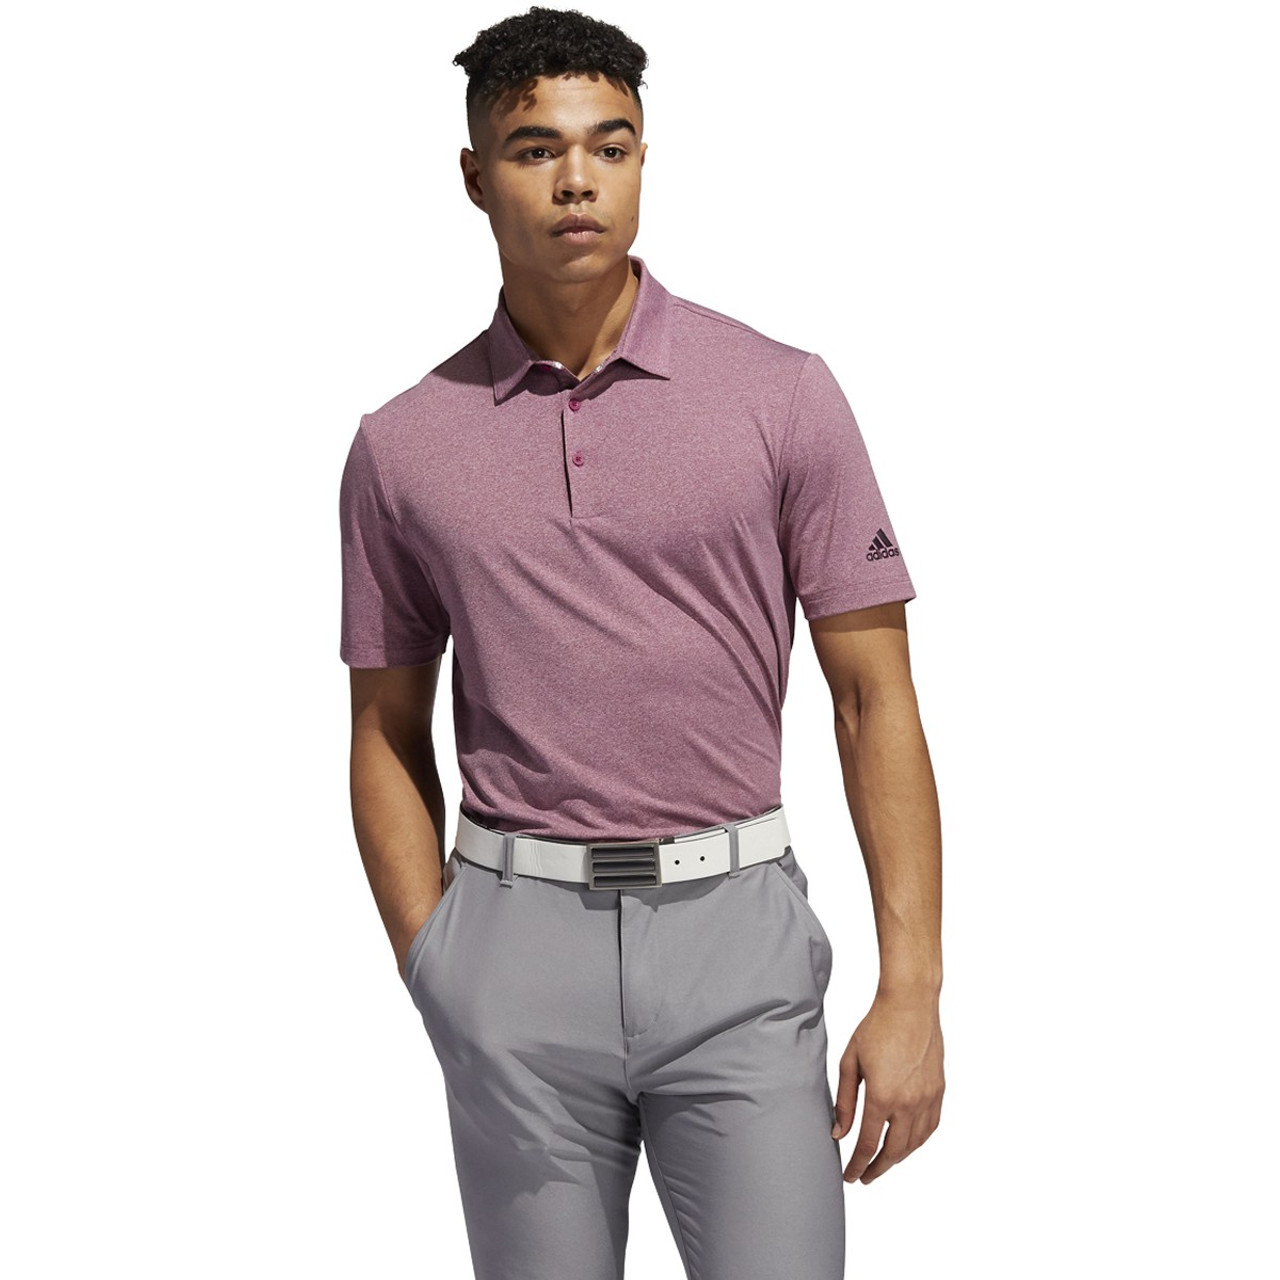 Adidas Ultimate 365 2.0 Heather Polo - Power Berry